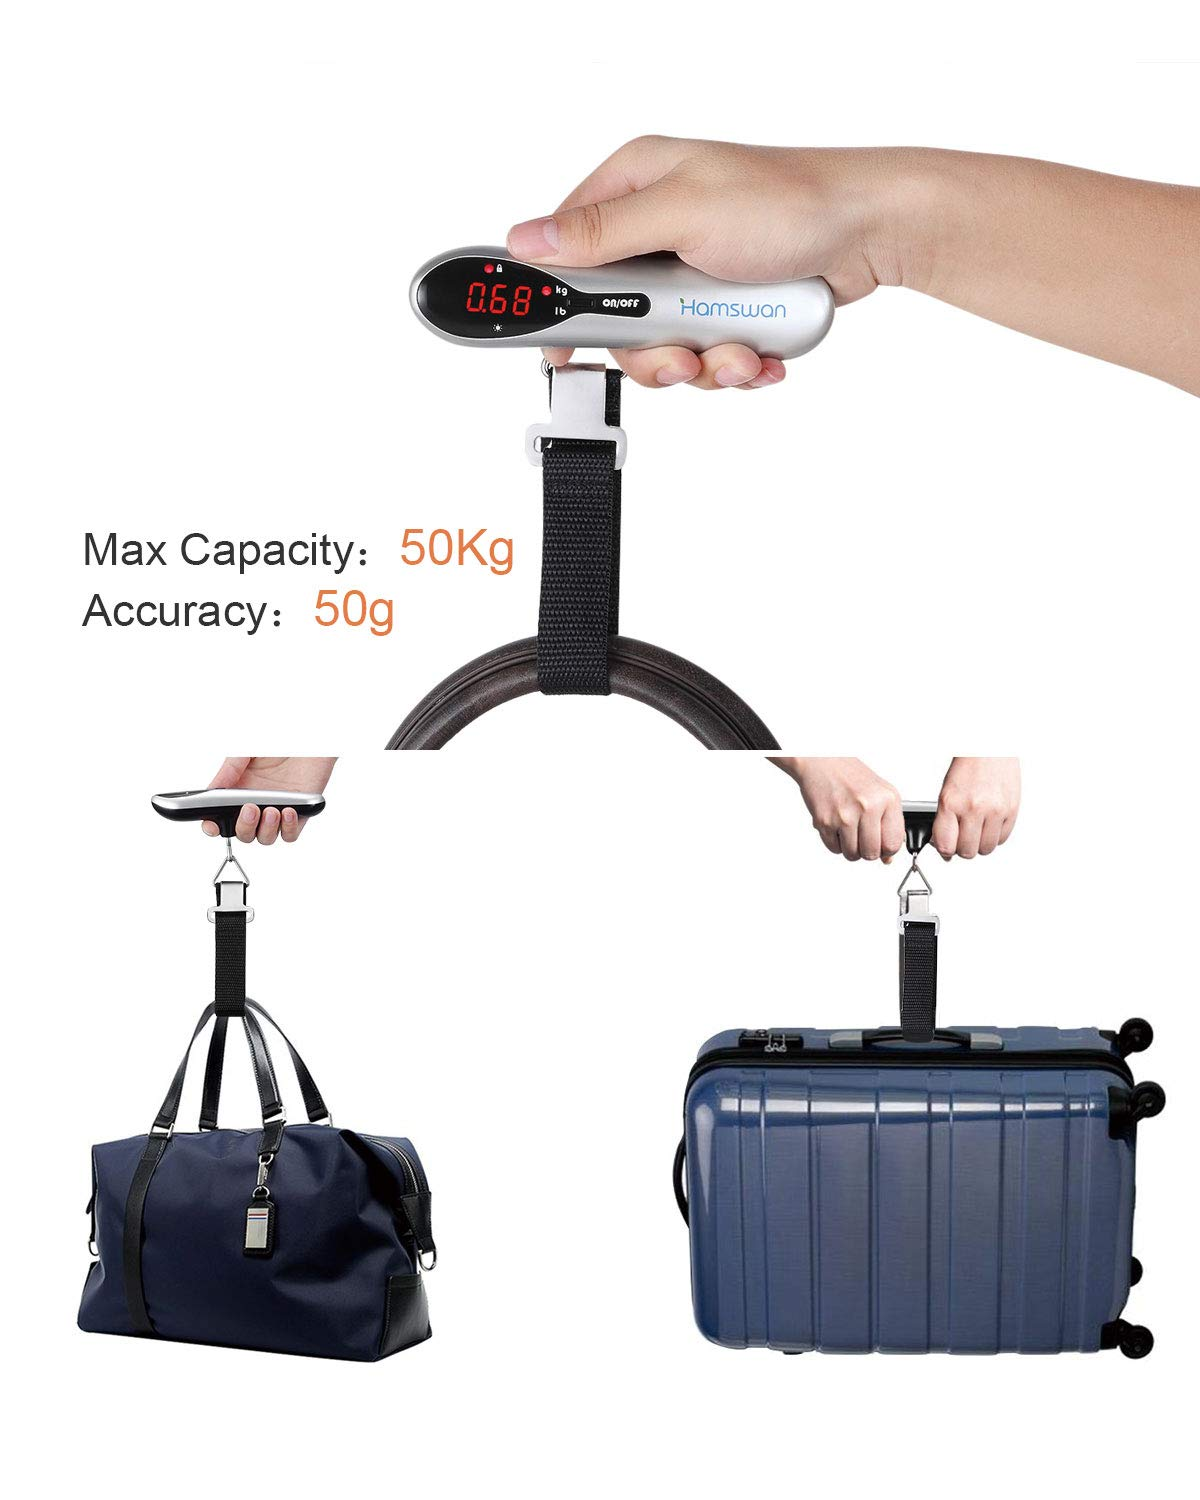 2 x AAA Batteries Included Luggage Scale HAMSWAN Portable Digital Travel Suitcase Scales Hanging Scales Luggage Weighing Scale with Tare Function for Travel Outdoor Home 110 lb// 50KG Capacity